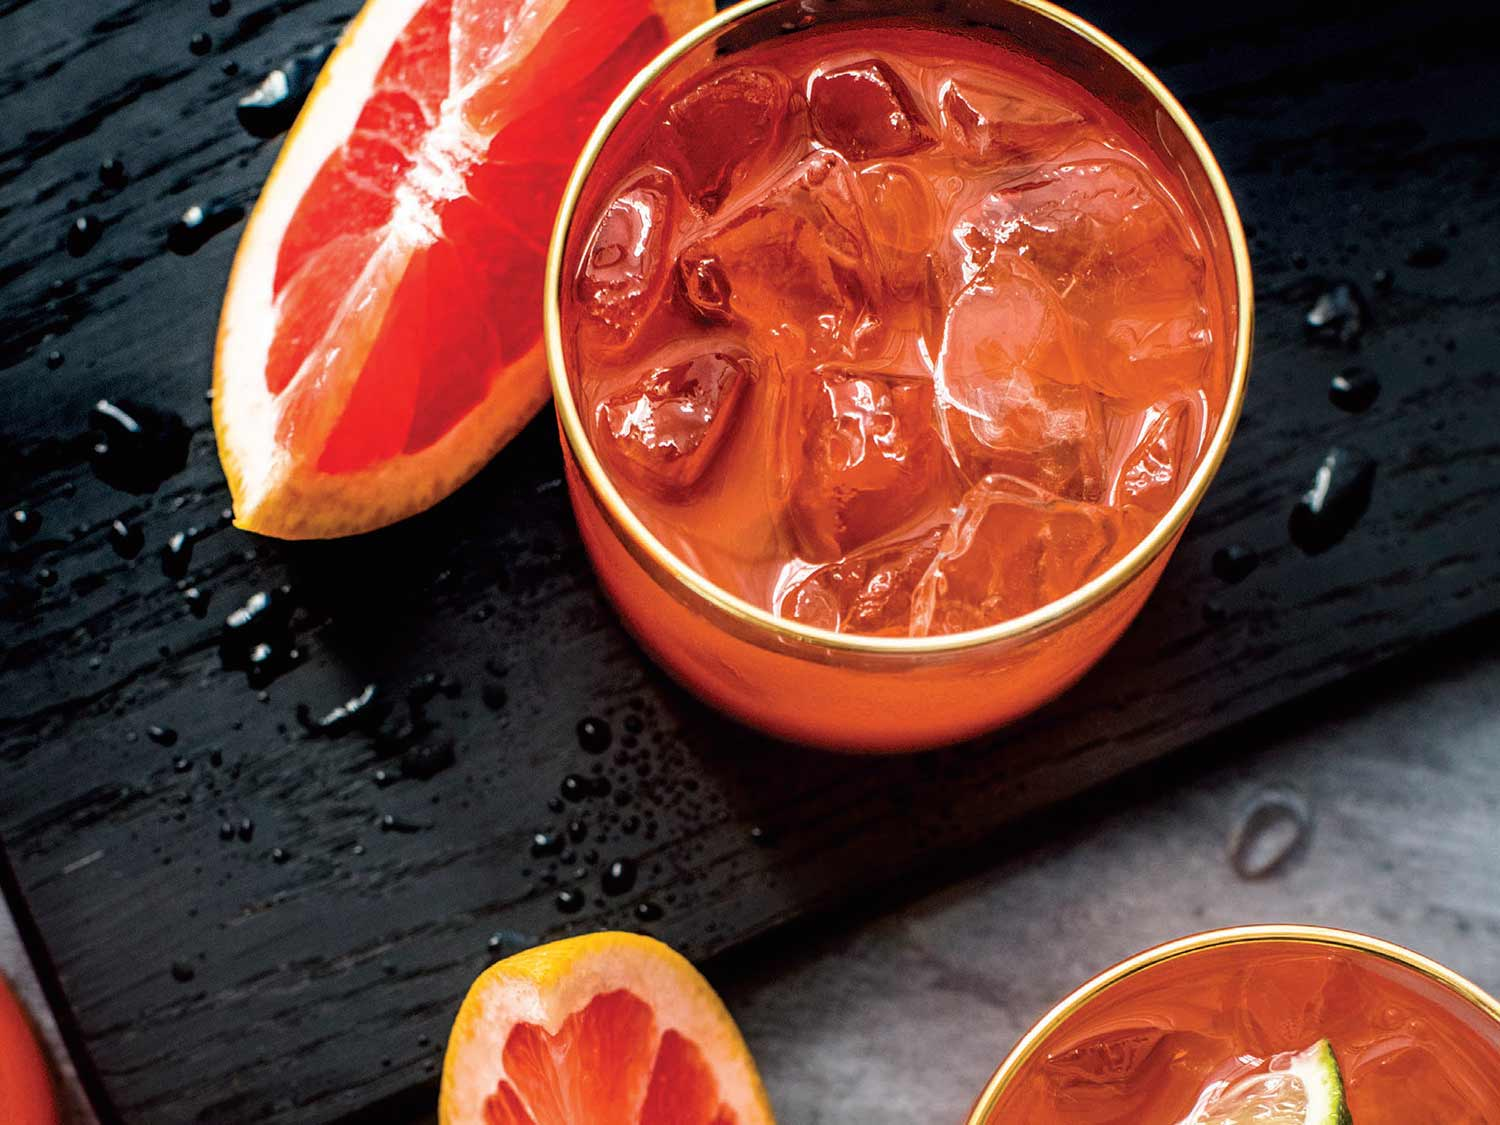 Ratterwick Punch (Sparkling Gin, Aperol, and Grapefruit Cocktail) #grapefruitcocktail Ratterwick Punch (Sparkling Gin, Aperol, and Grapefruit Cocktail) Recipe | Serious Eats #grapefruitcocktail Ratterwick Punch (Sparkling Gin, Aperol, and Grapefruit Cocktail) #grapefruitcocktail Ratterwick Punch (Sparkling Gin, Aperol, and Grapefruit Cocktail) Recipe | Serious Eats #grapefruitcocktail Ratterwick Punch (Sparkling Gin, Aperol, and Grapefruit Cocktail) #grapefruitcocktail Ratterwick Punch (Sparklin #grapefruitcocktail